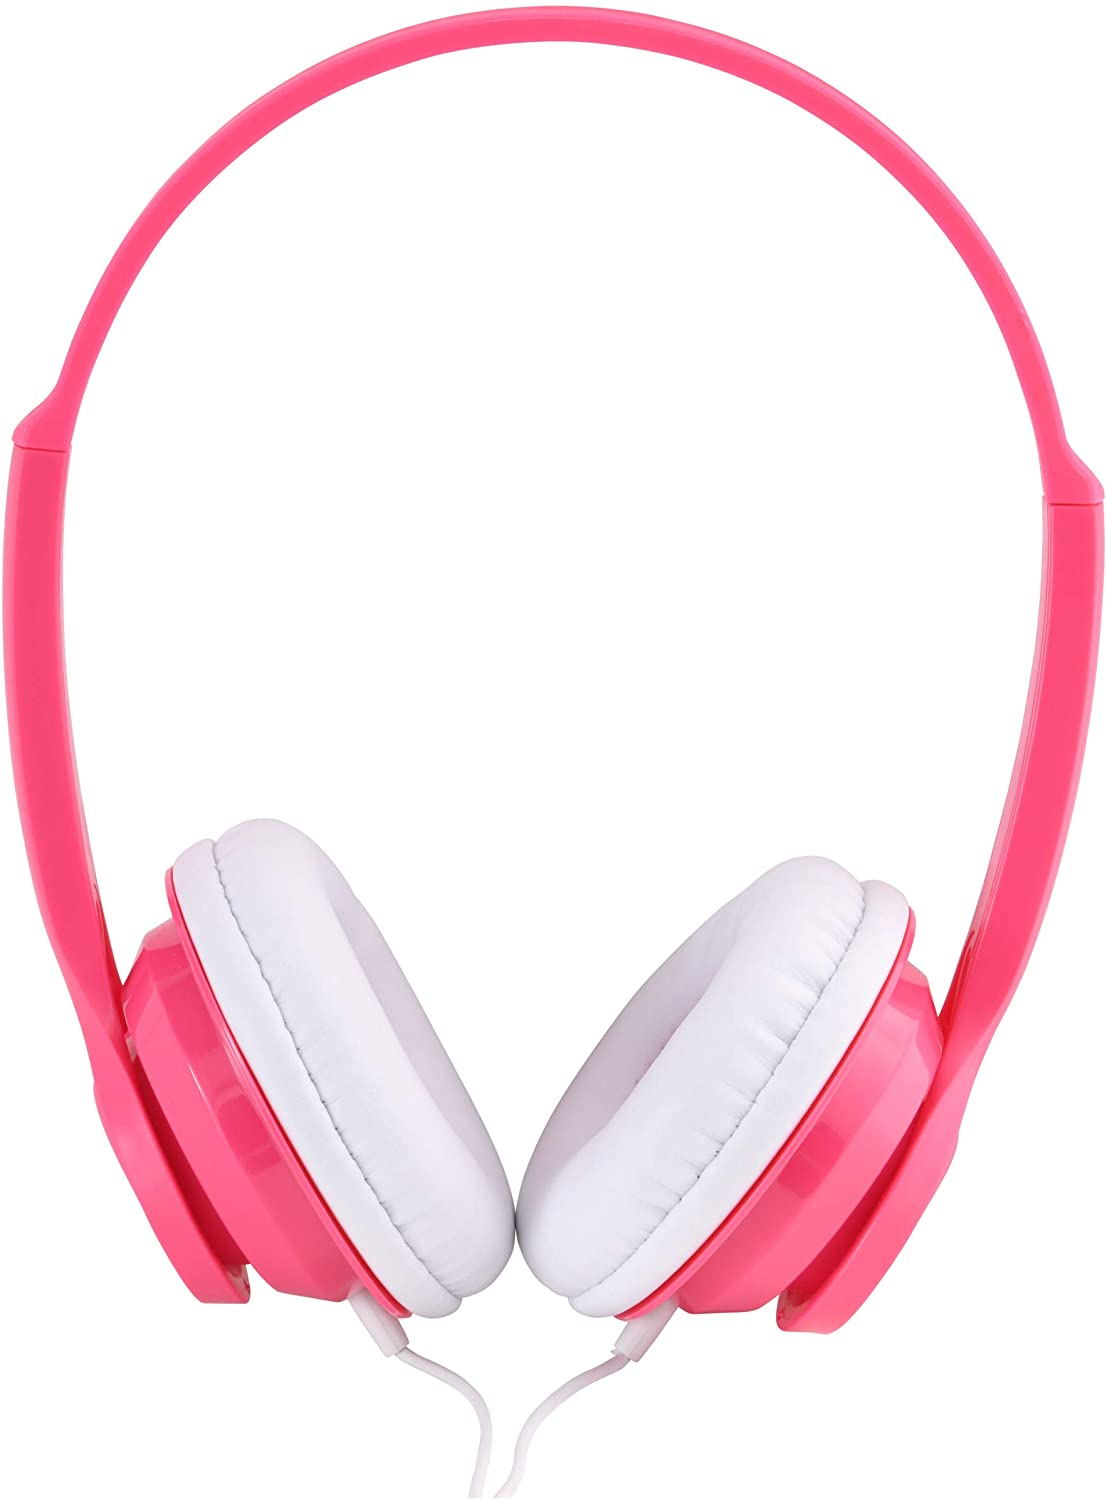 On-Ear Headphones for Smartphones, Stereos and Computers Fuchsia Versatile Design - Pink